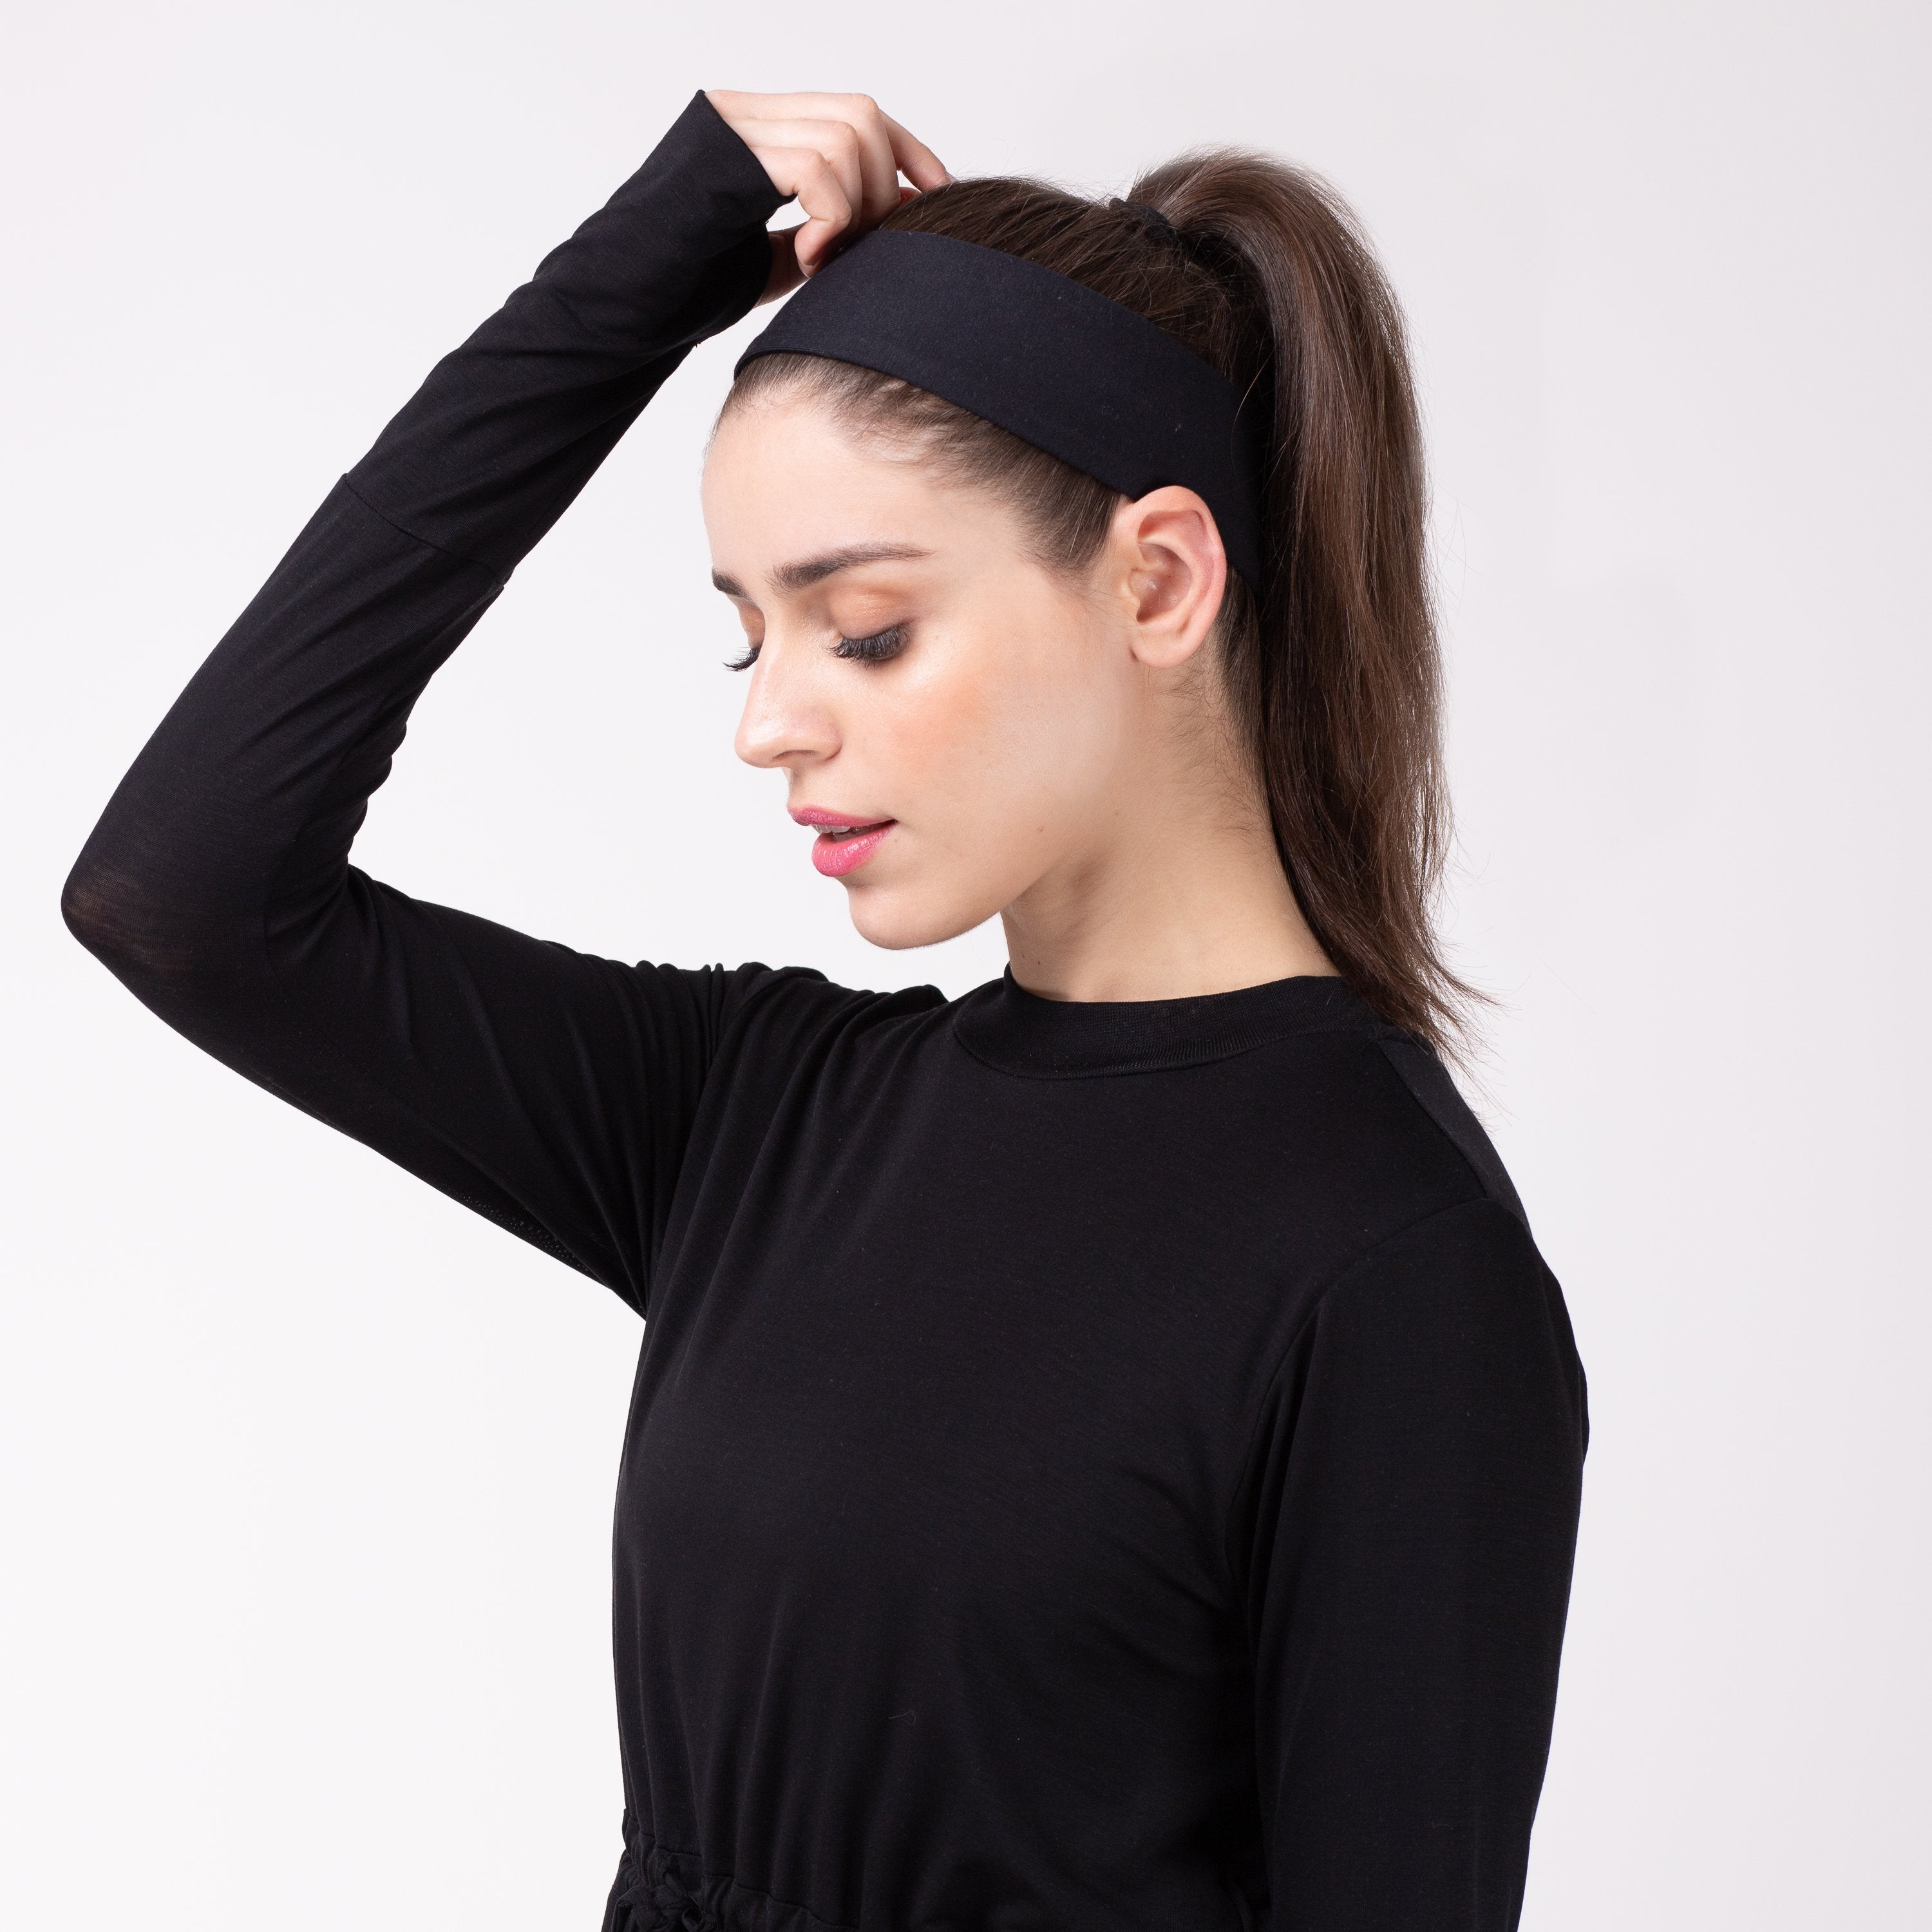 Woman looking left in black shirt with matching black HAWA headband.